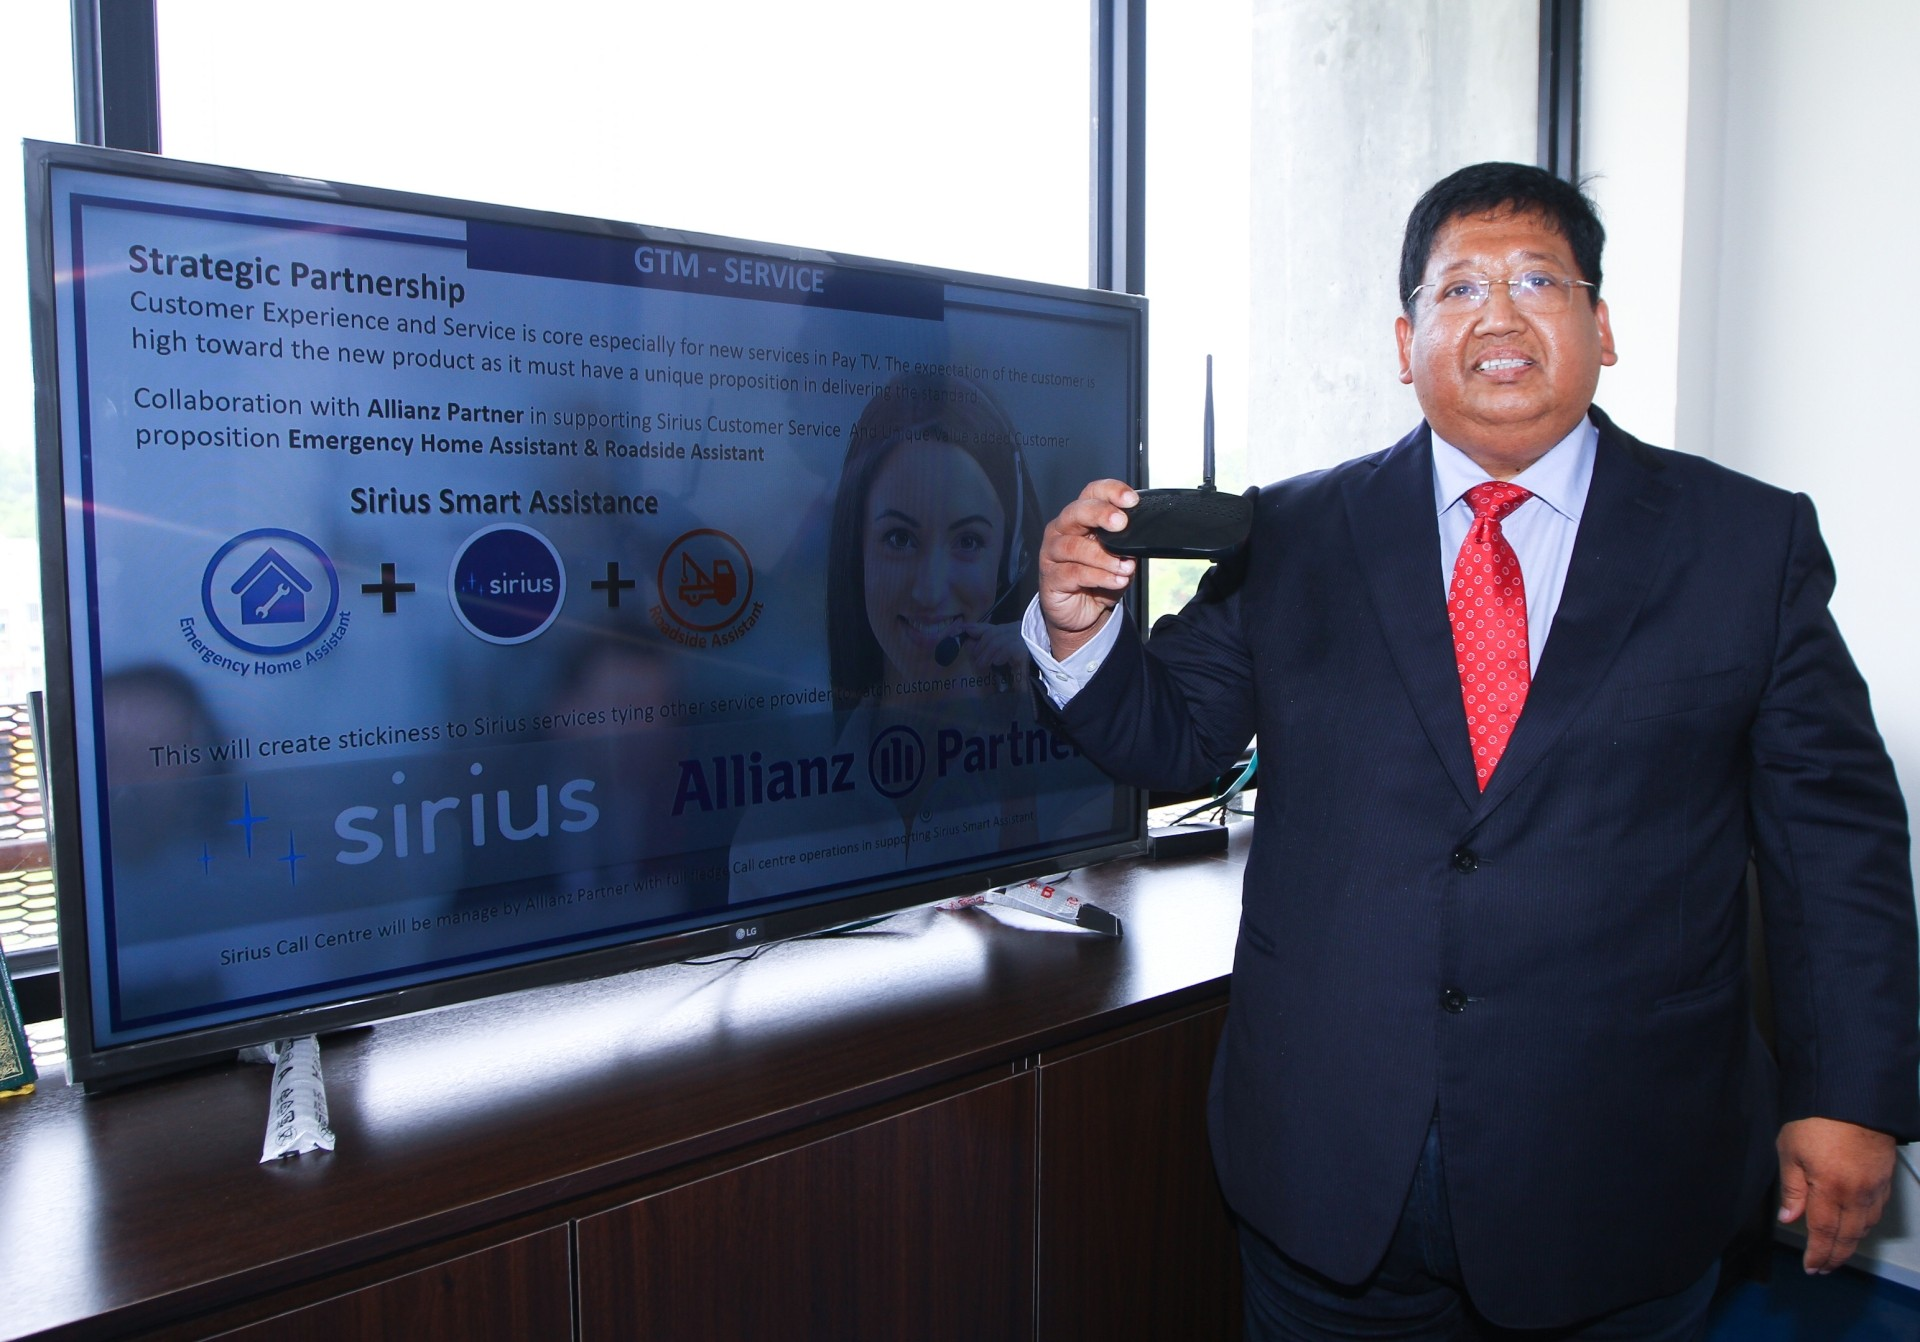 Unperturbed by the daunting task, Khairuddin Abdul Rahmanpic), the promoter behind Sirius TV, felt he has what it takes to make a splash in the satellite pay-TV business. - MOHD SAHAR MISNI/The Star